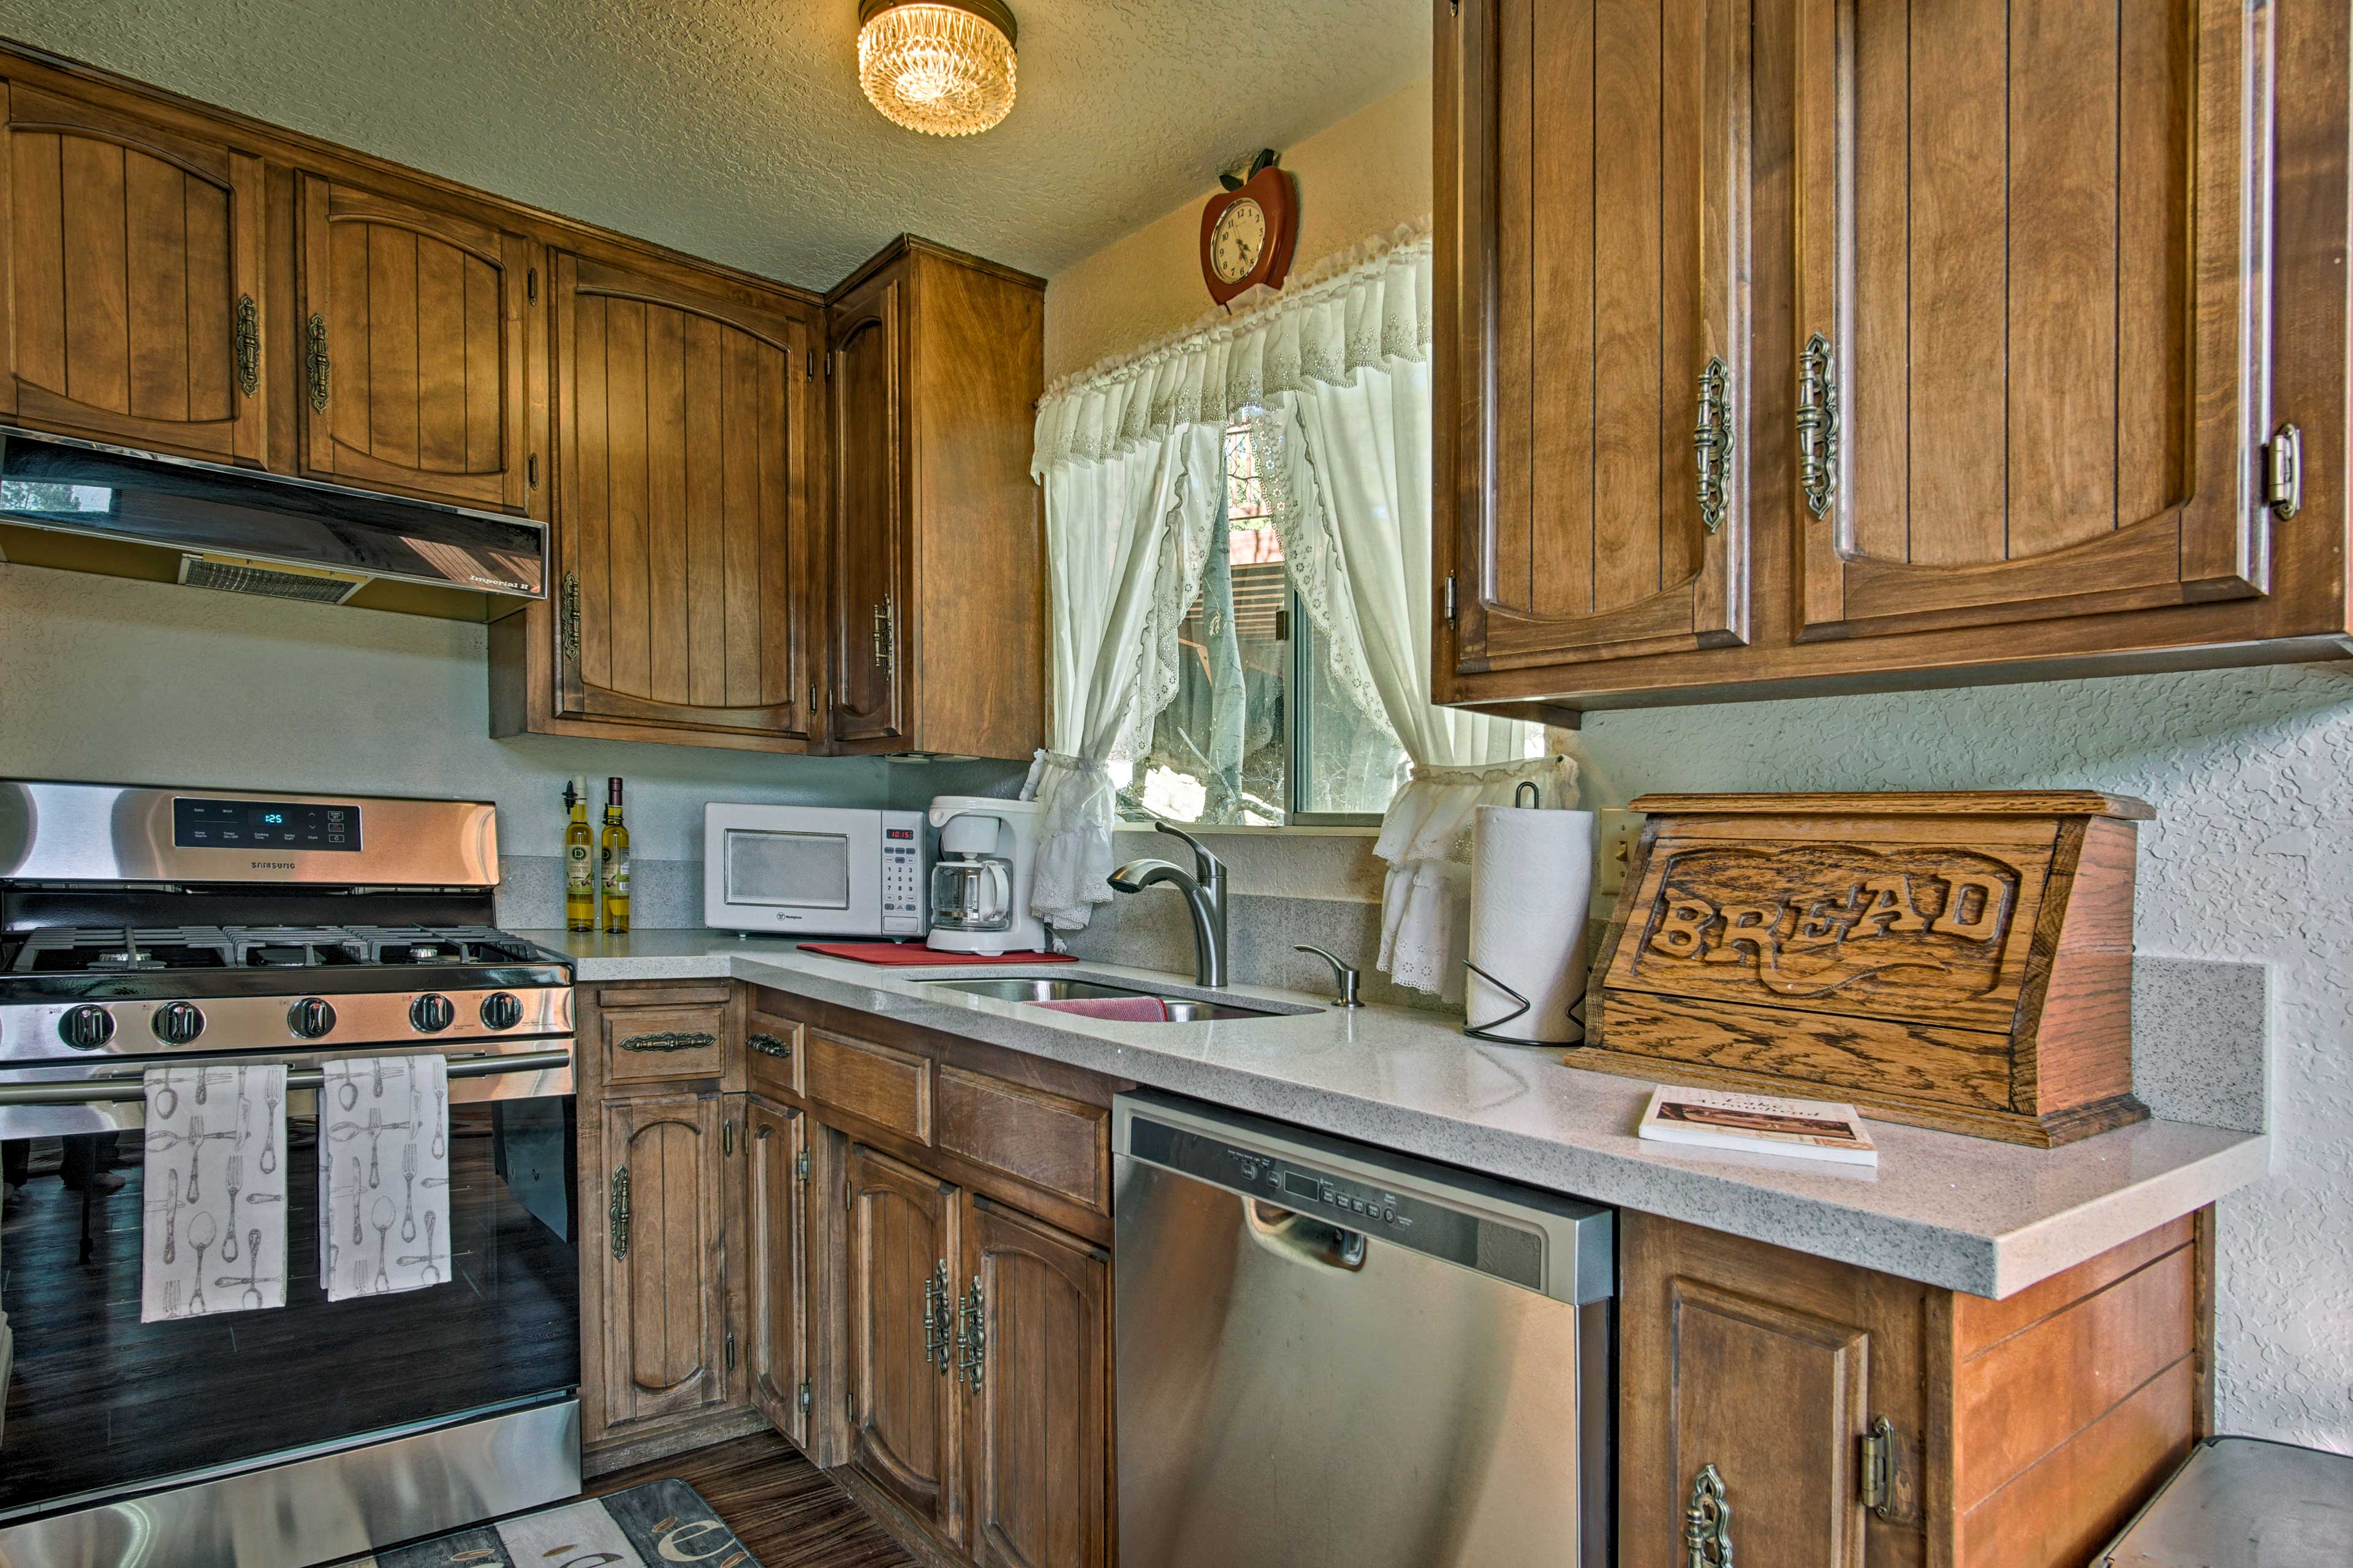 Whip up all your favorite recipes in the fully equipped kitchen.